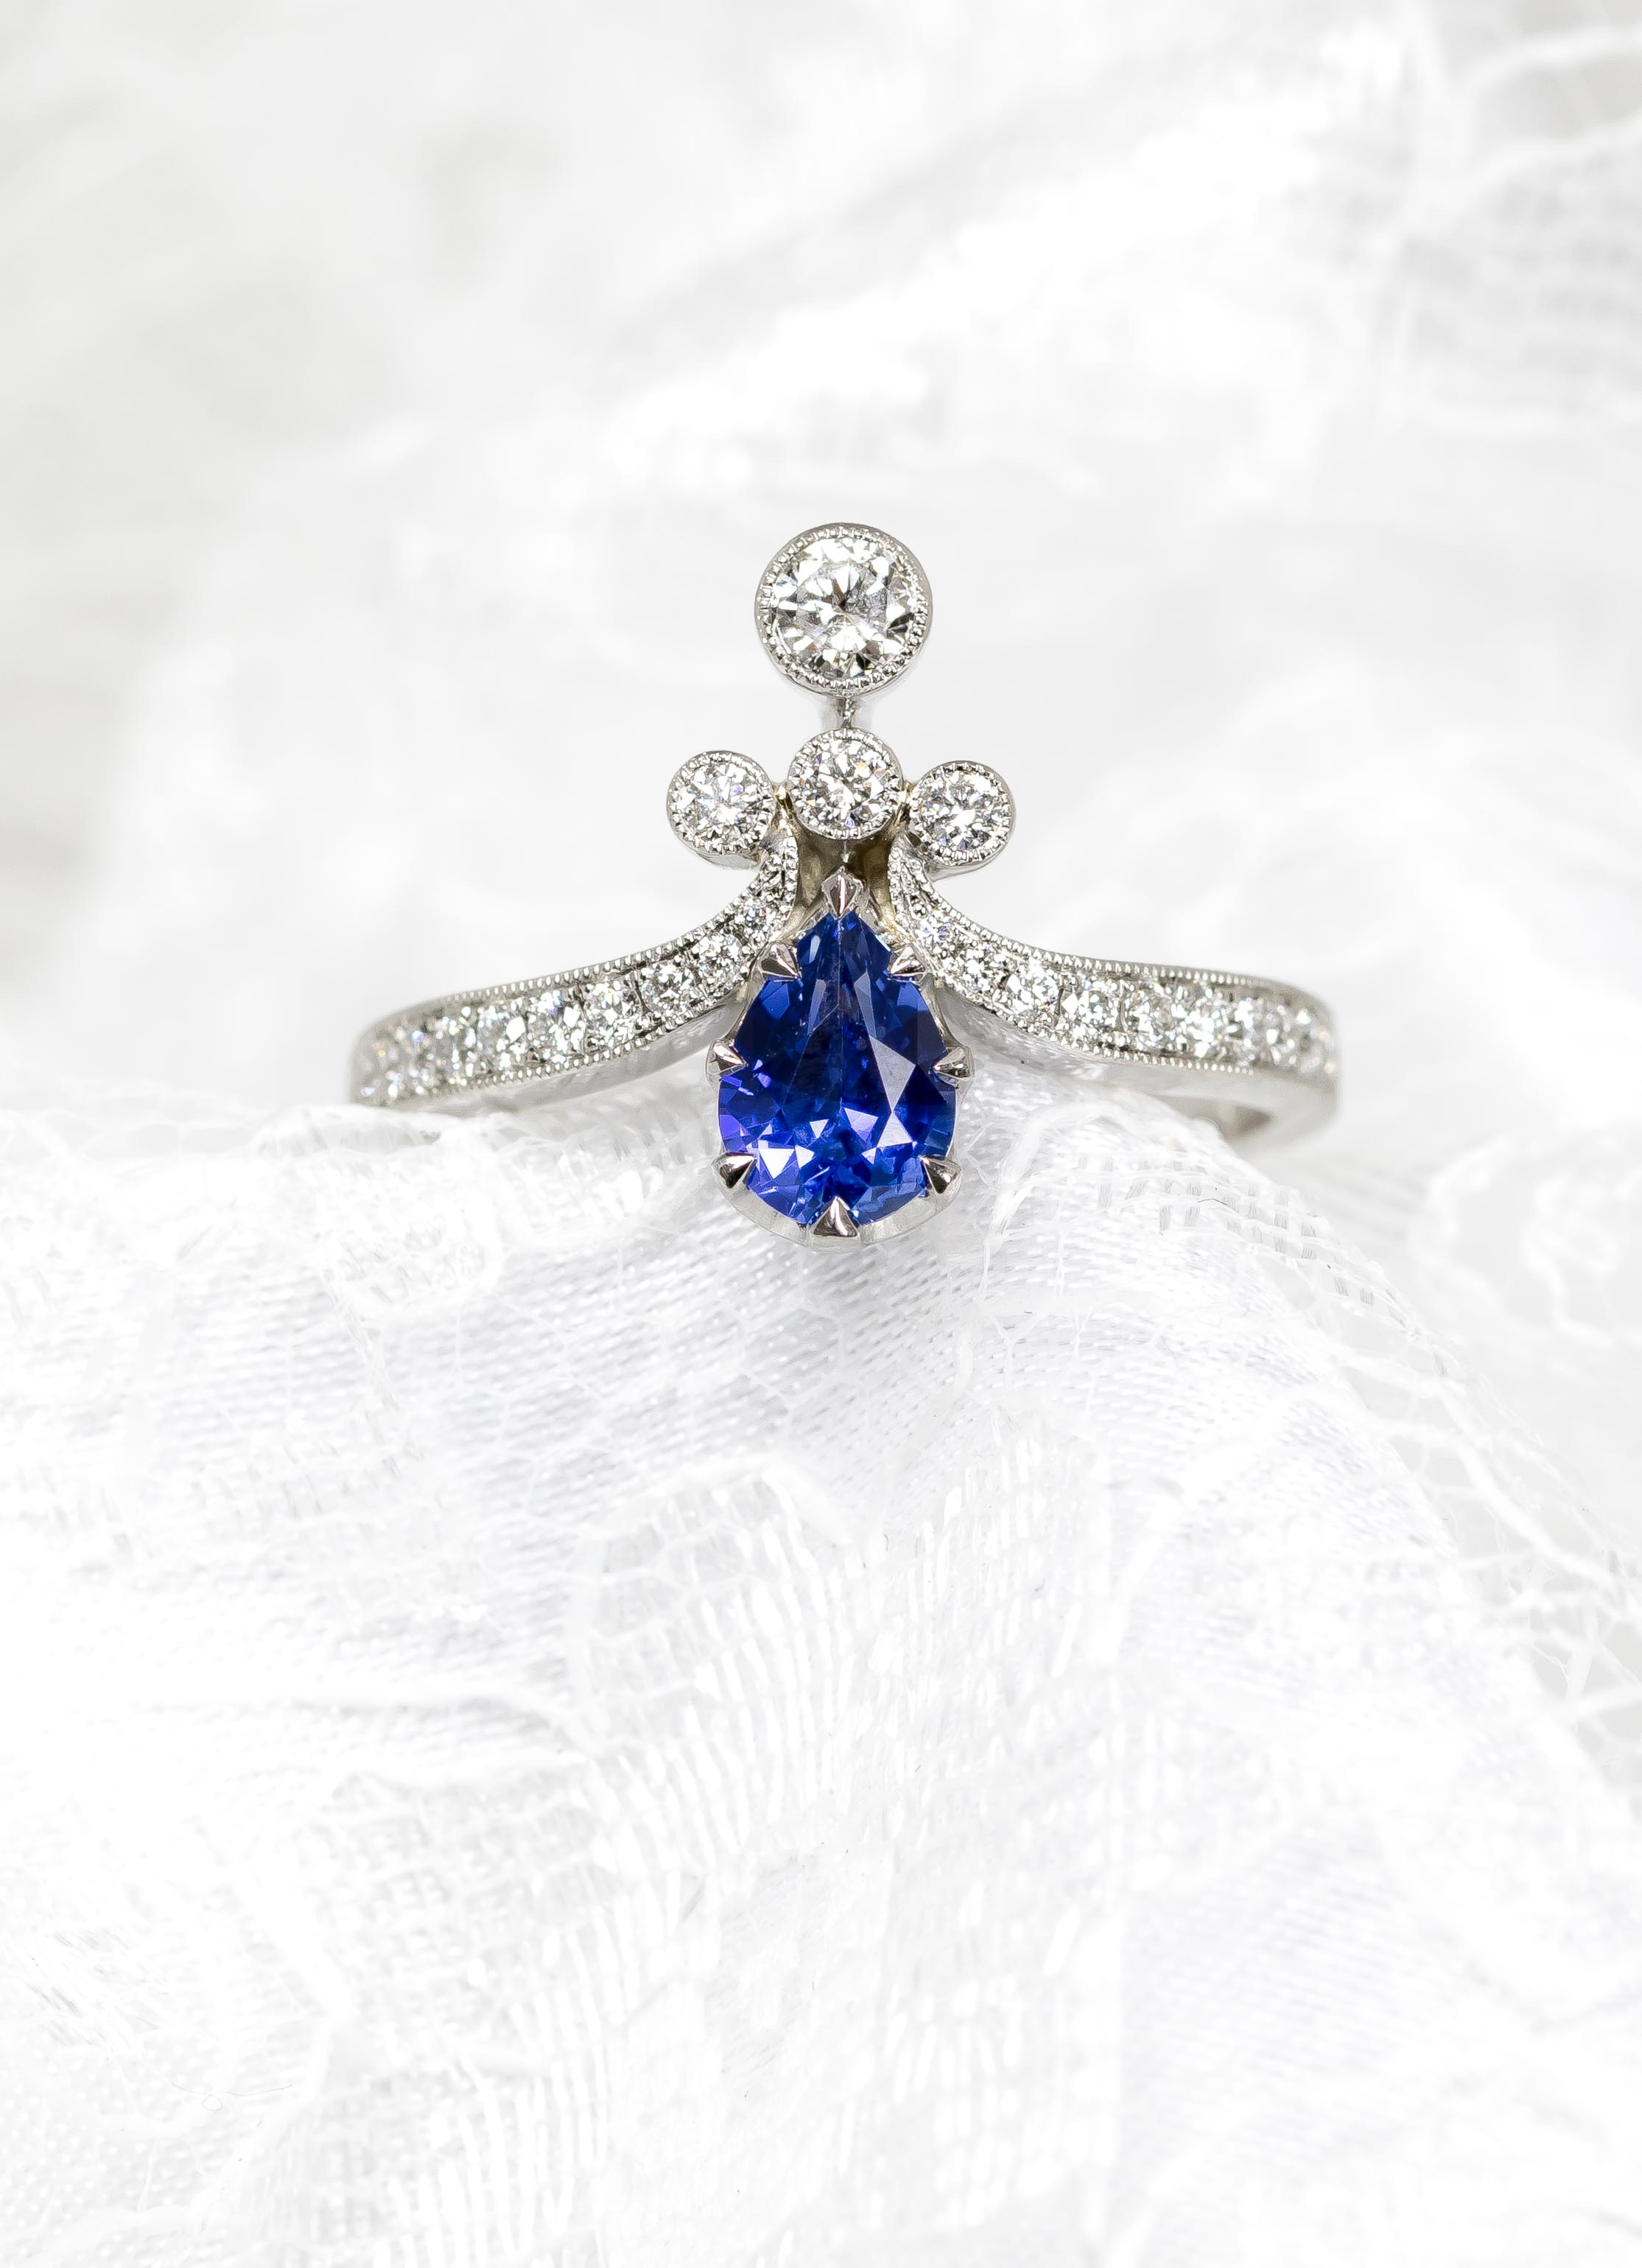 Platinum mounted pear-shaped sapphire and diamond Edwardian style tiara ring. Made in Chichester, England.